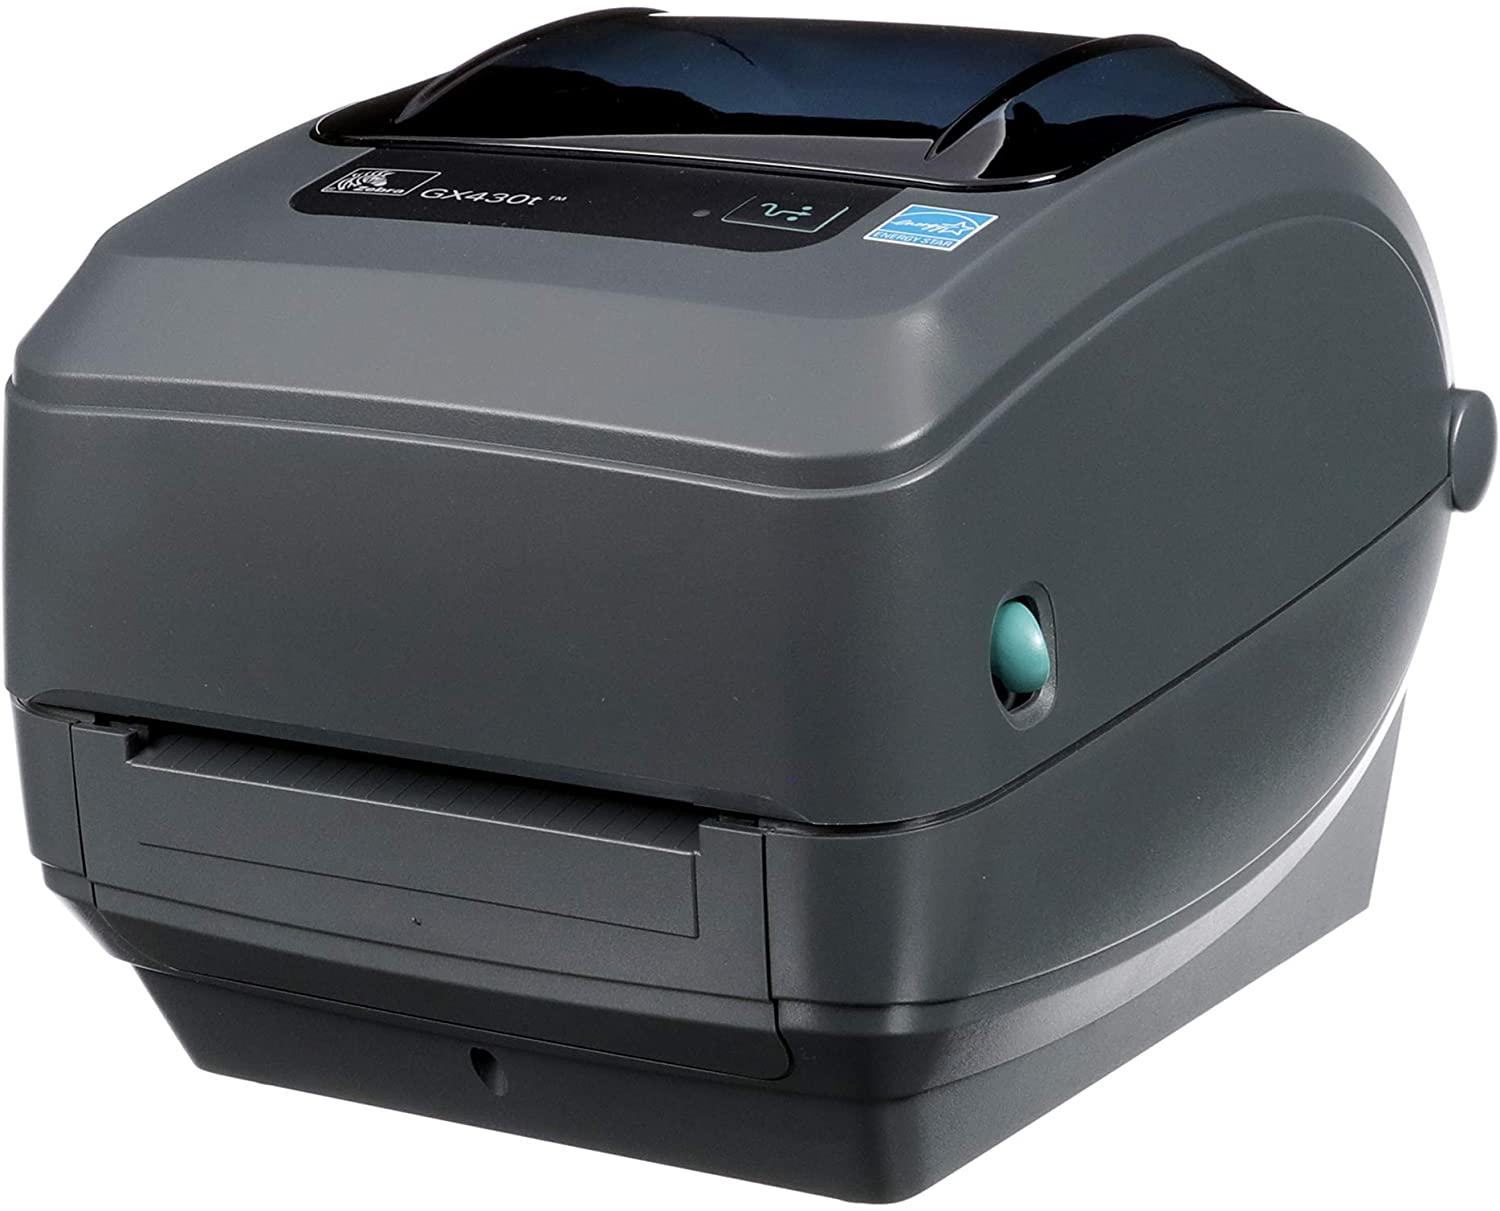 Zebra GX430t Thermal Transfer Desktop Printer Print Width of 4 in USB Serial and Parallel Port Connectivity GX43-102510-000